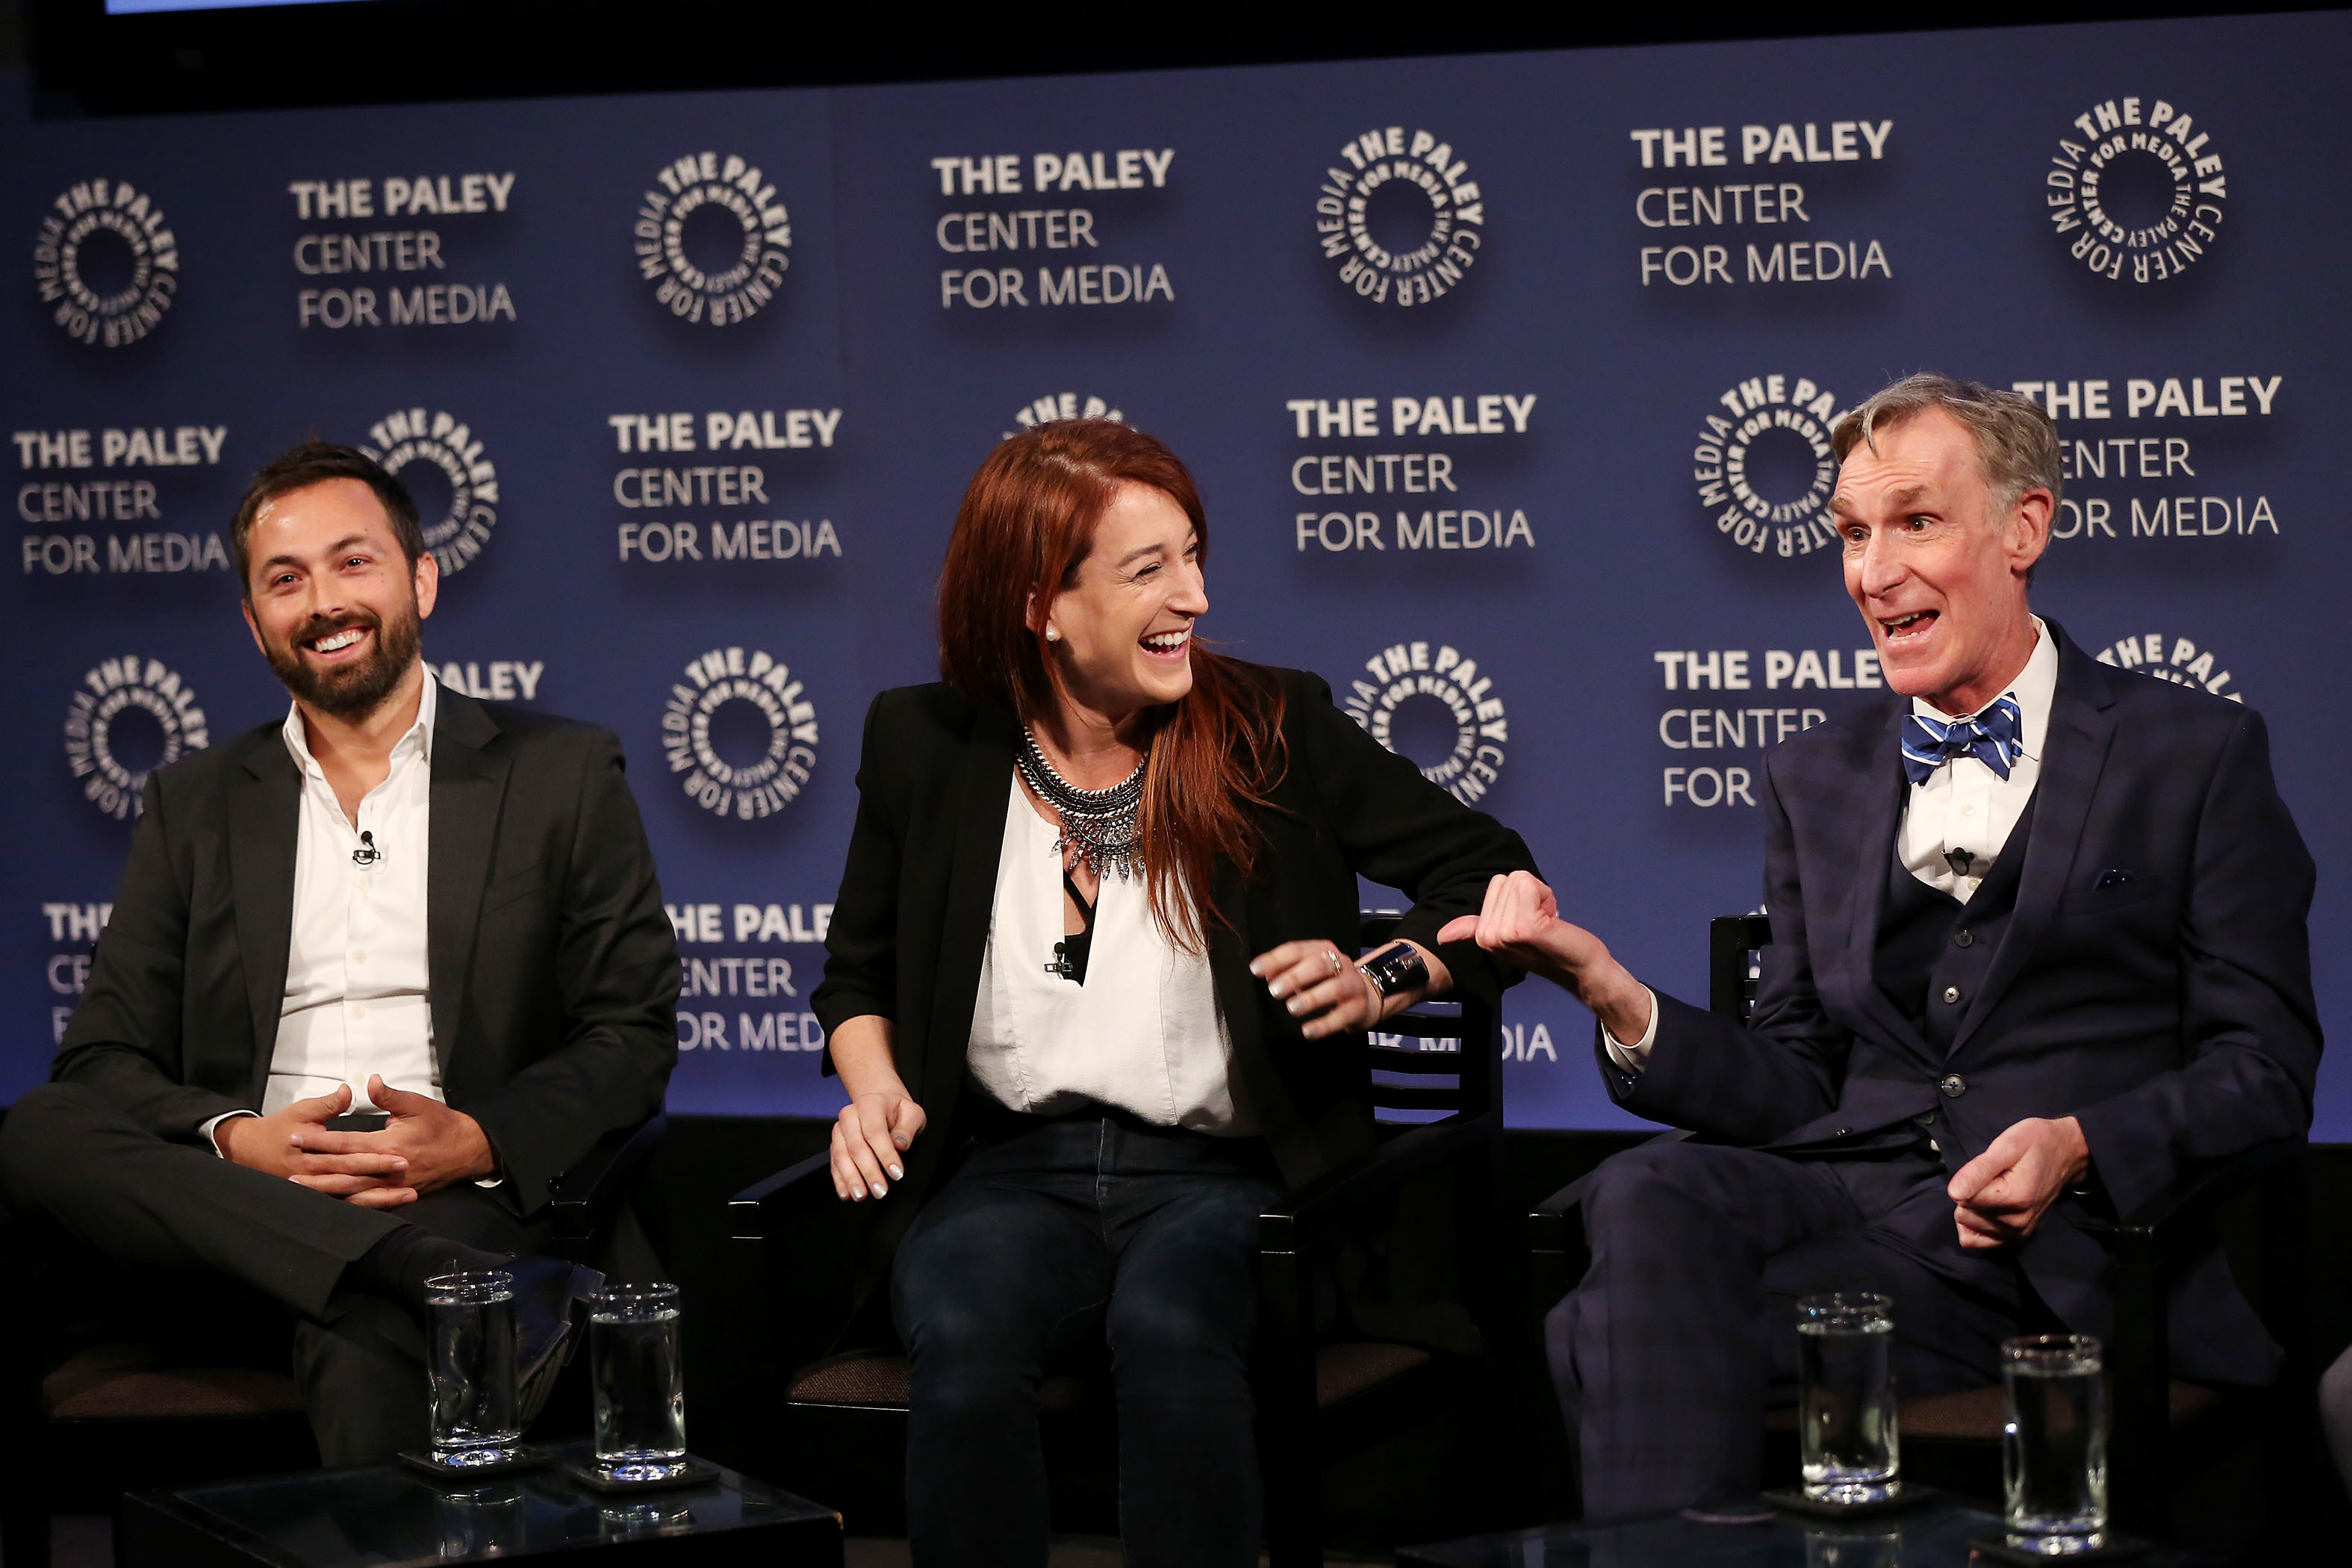 Bill Nye shut down flat earth conspiracies with help from special correspondents Derek Muller and Joanna Hausmann.